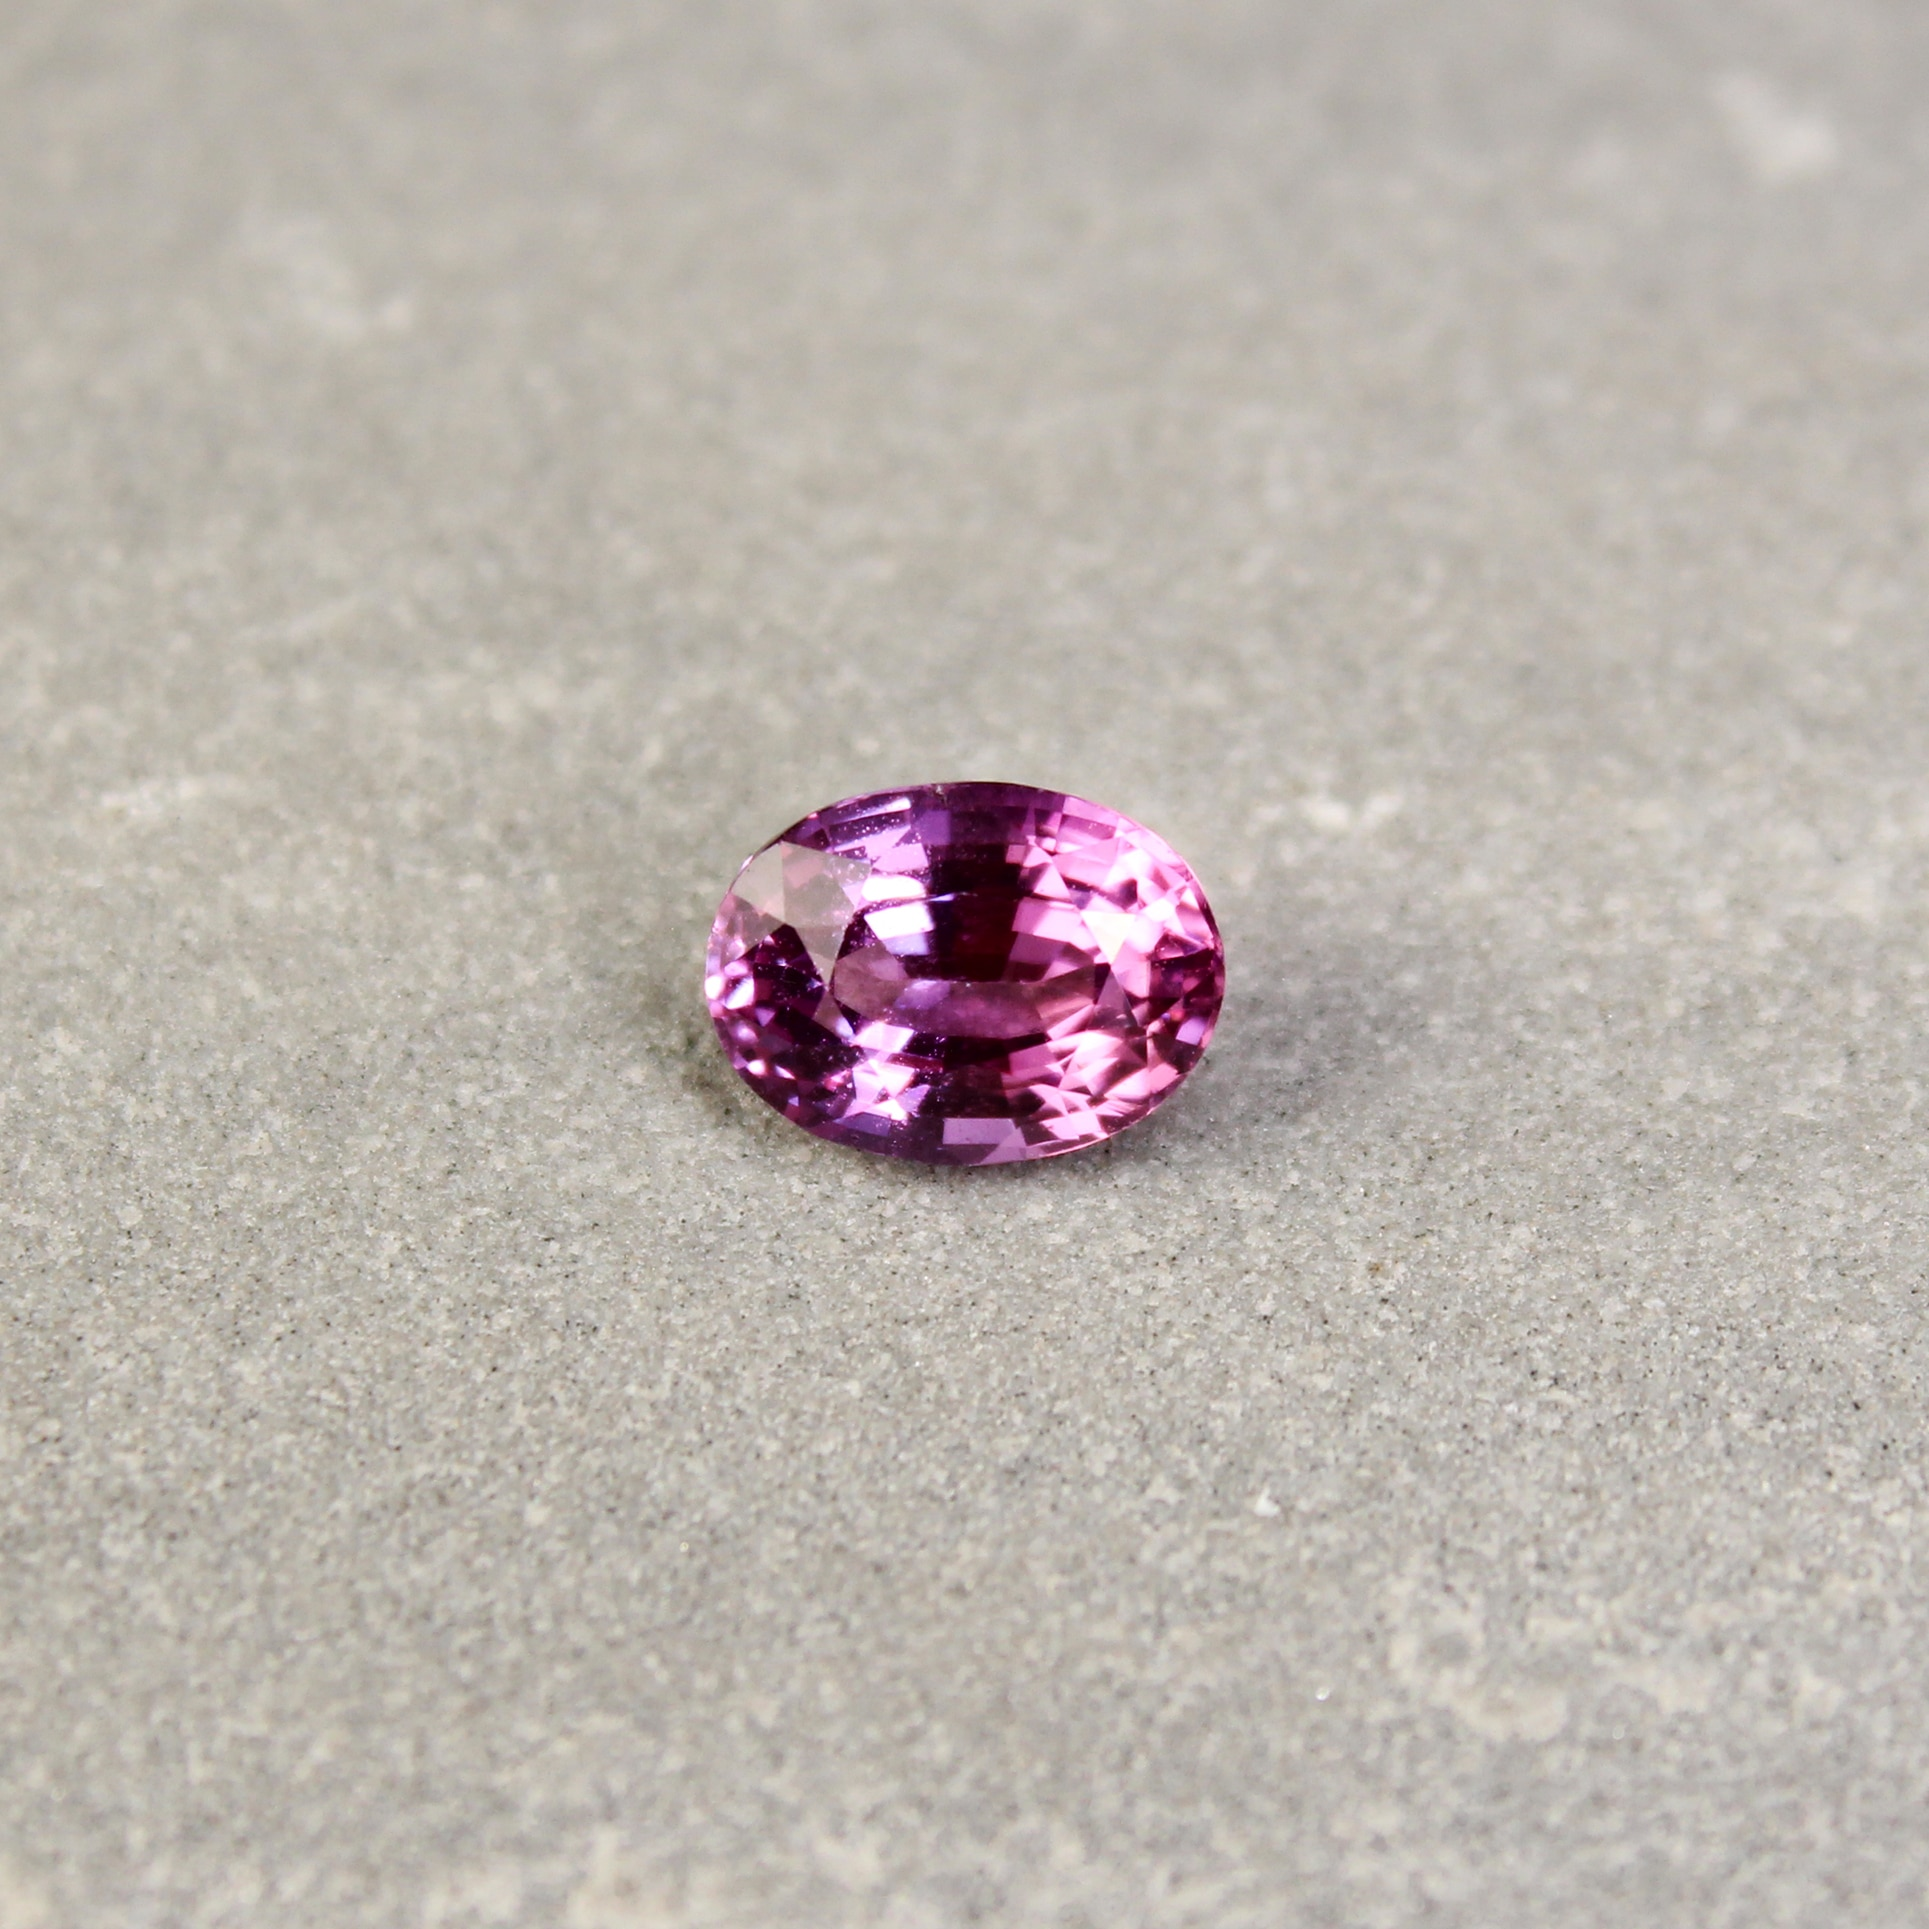 2.19 ct pink oval sapphire